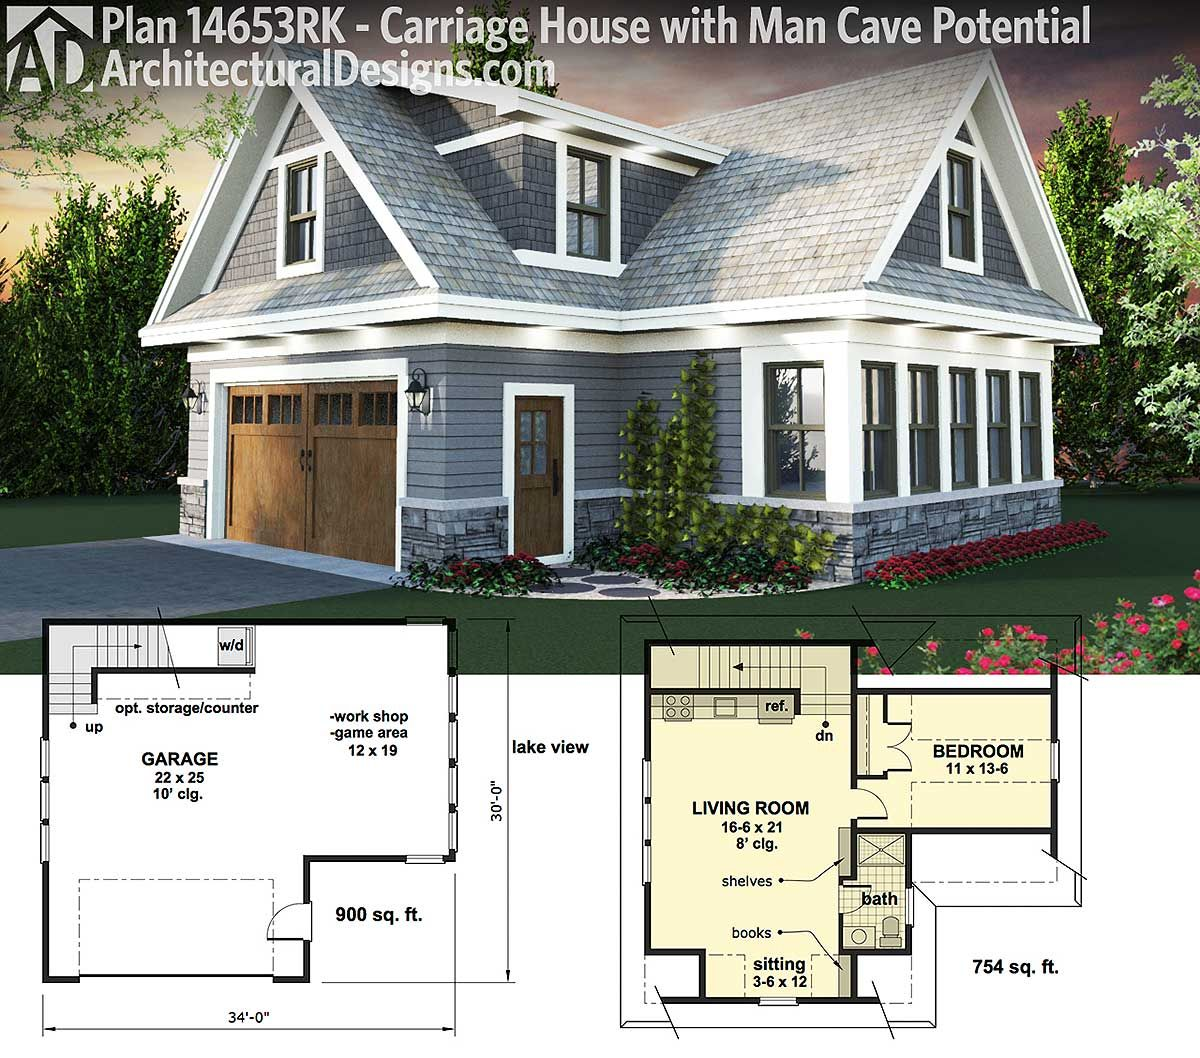 Plan 14653rk Carriage House Plan With Man Cave Potential Garage Guest House Carriage House Plans Guest House Plans